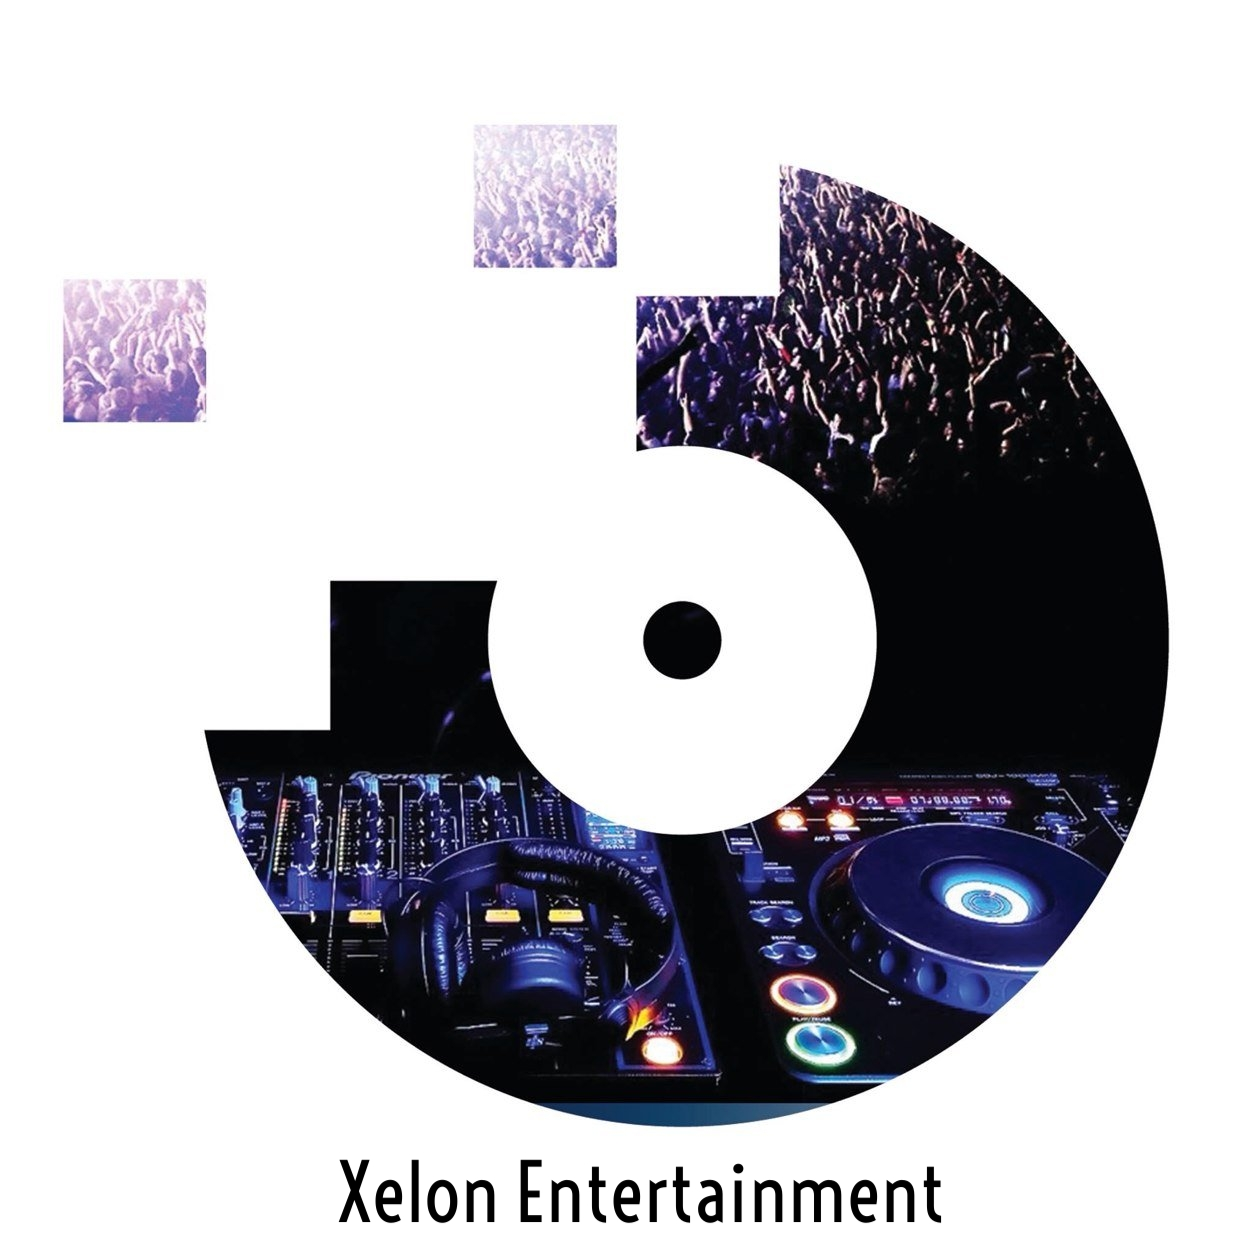 Xelon Entertainment